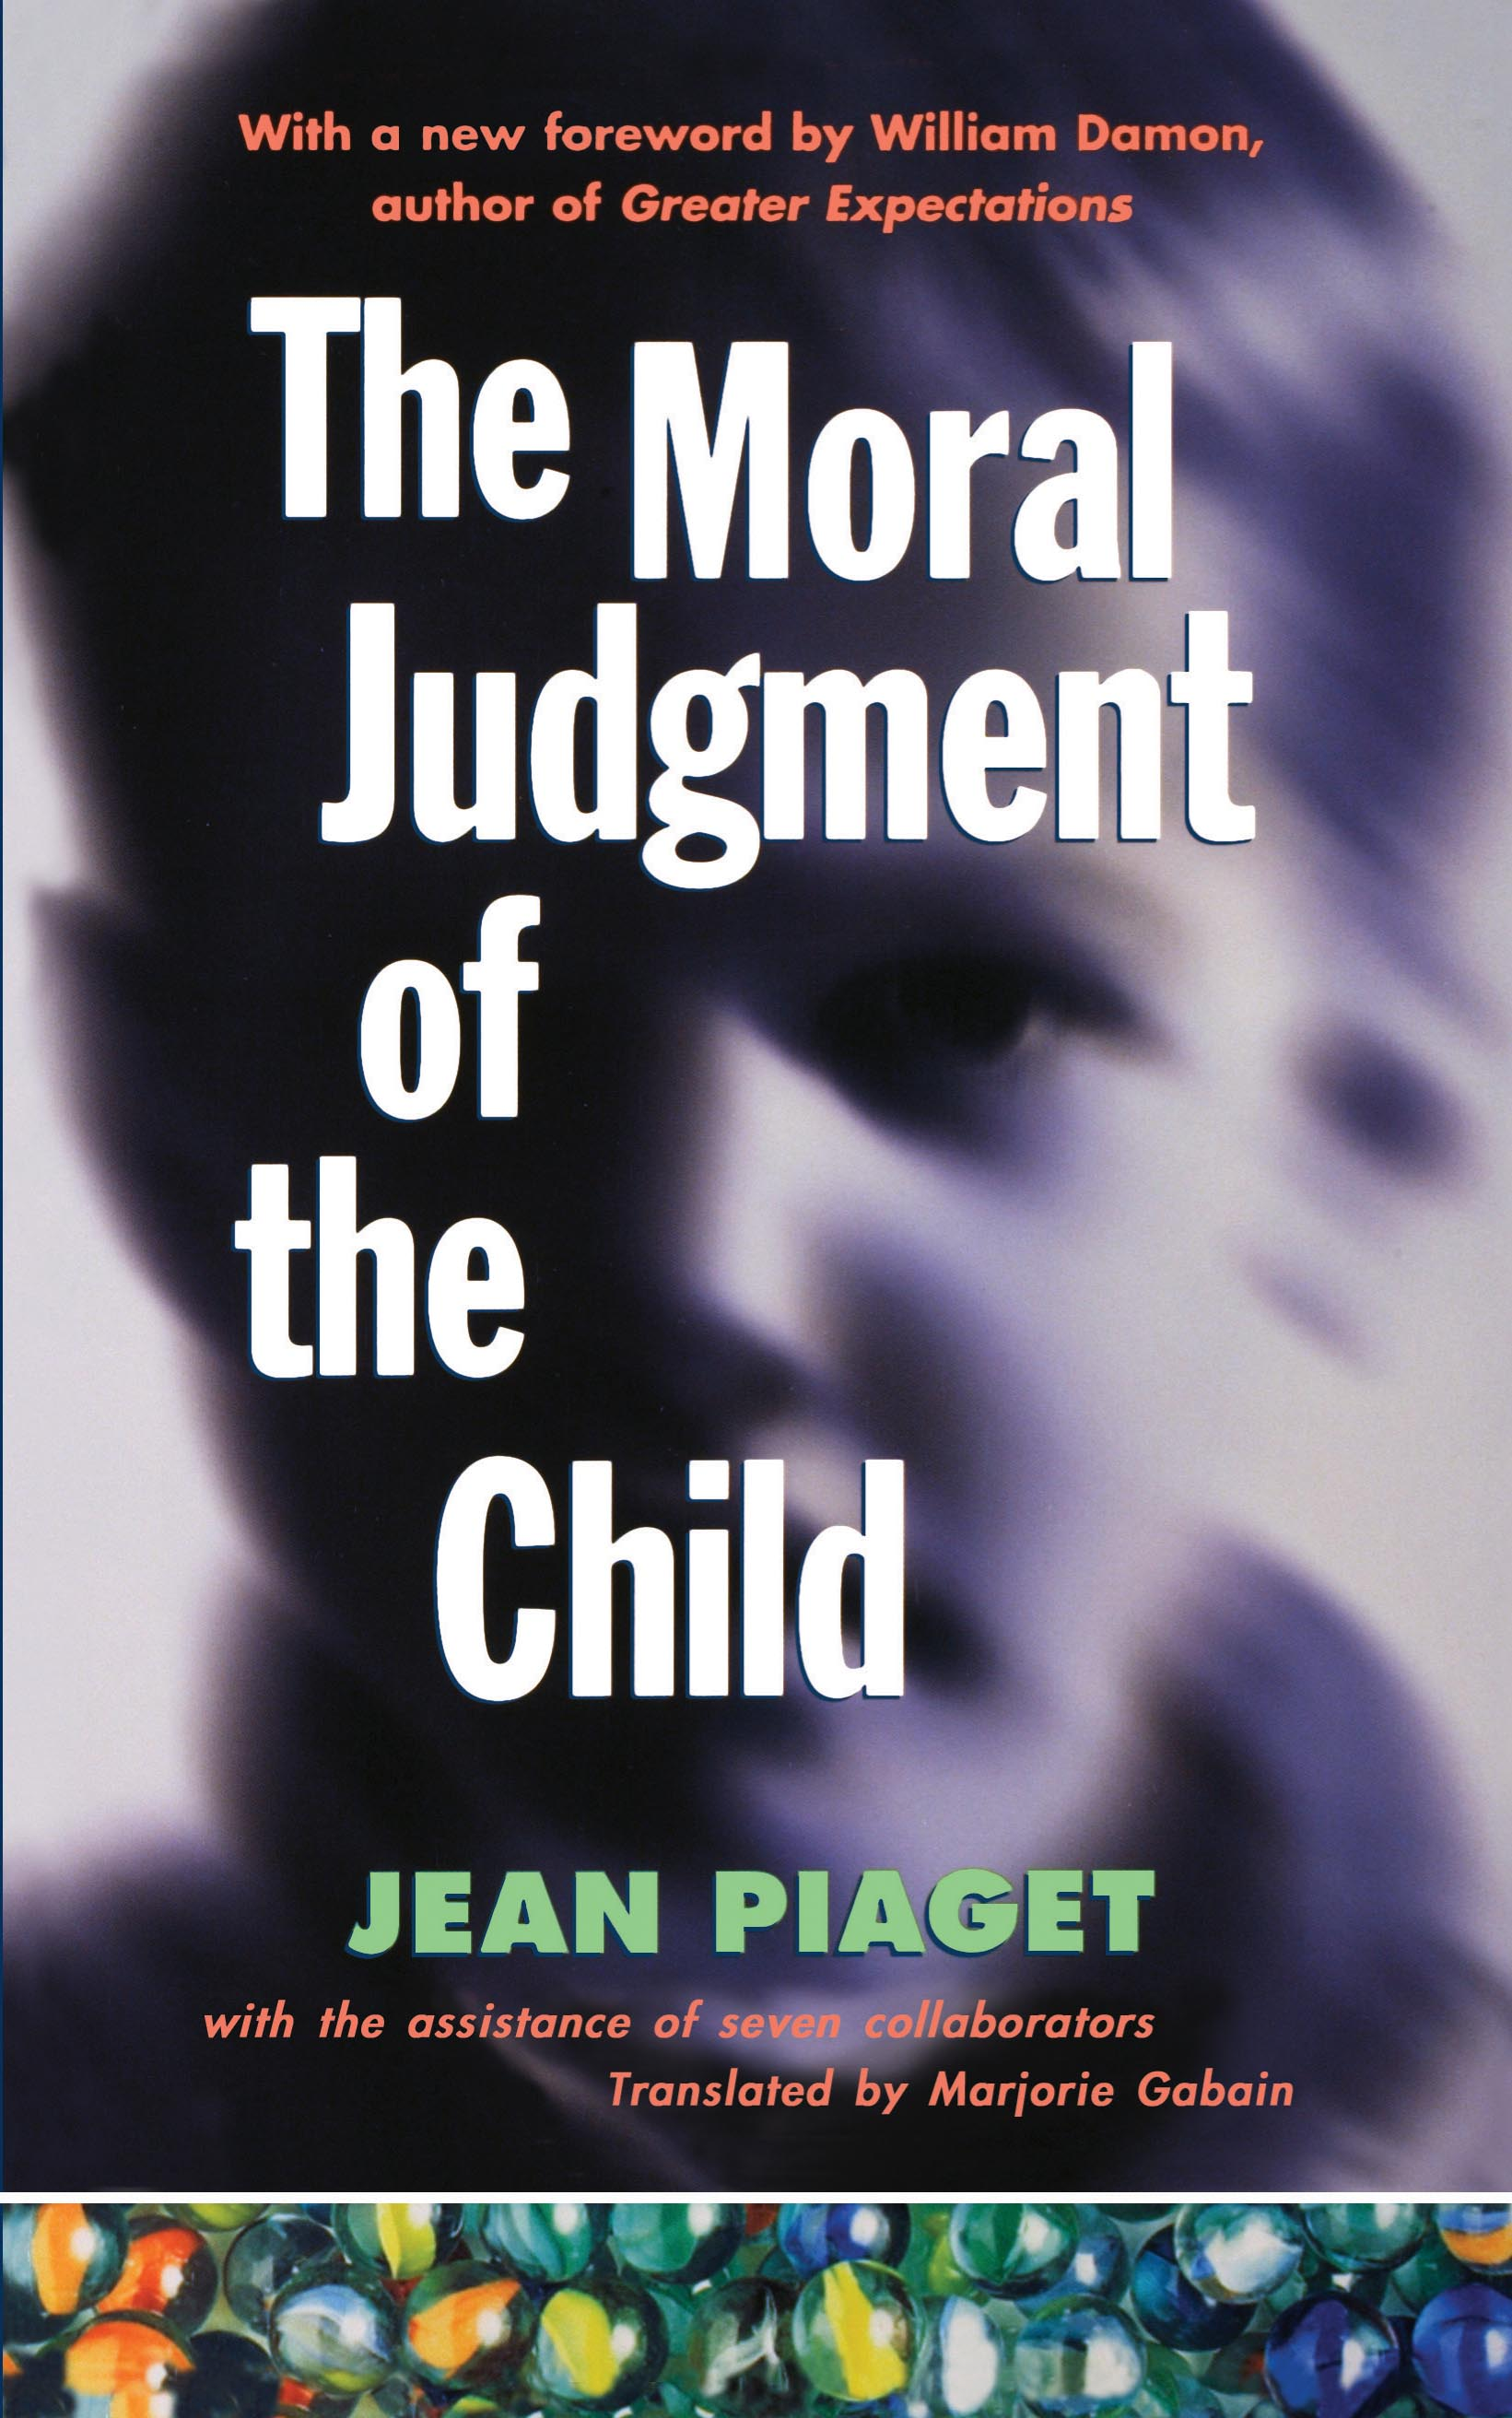 The Moral Judgement of the Child   Book by Jean Piaget